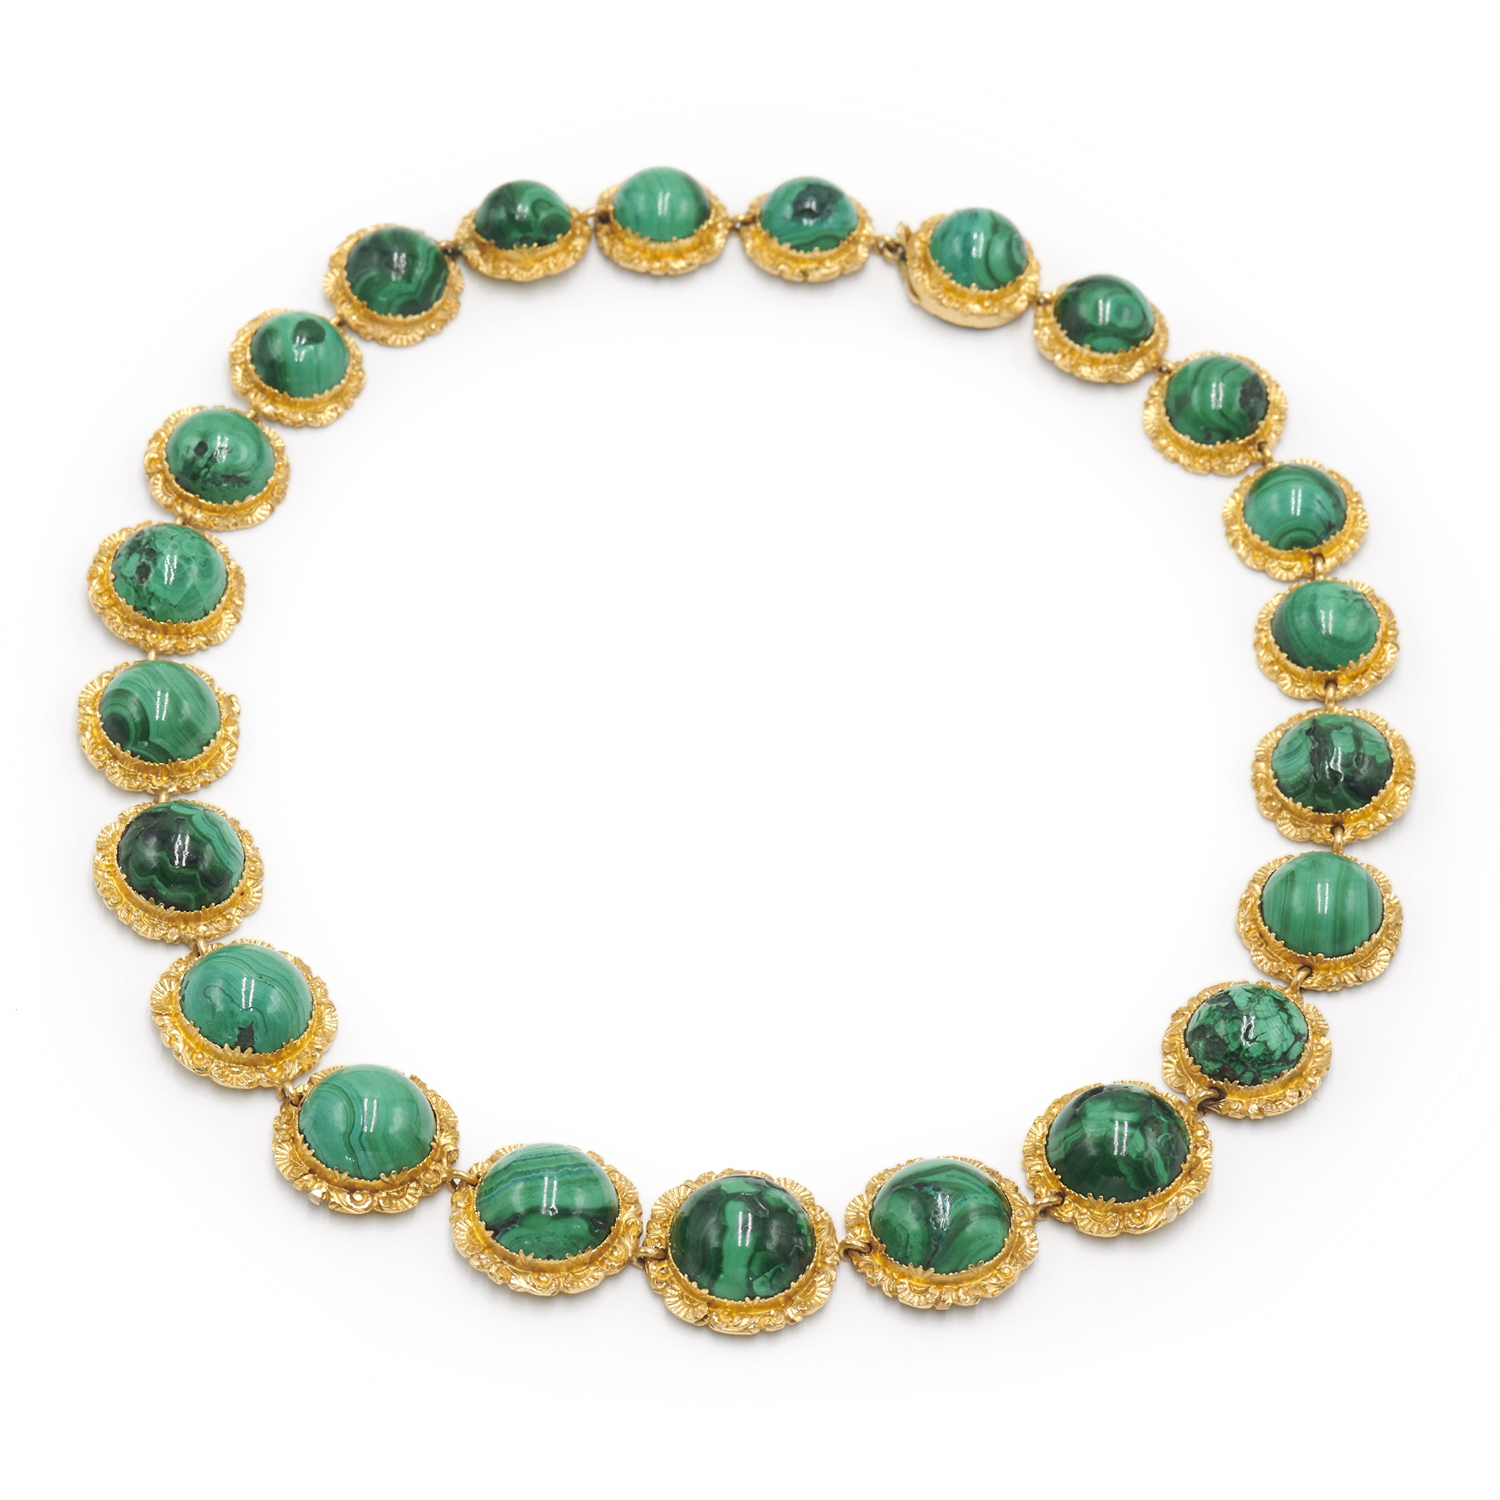 Antique Yellow Gold Cabochon Malachite Riviere Necklace, Serial FL38442